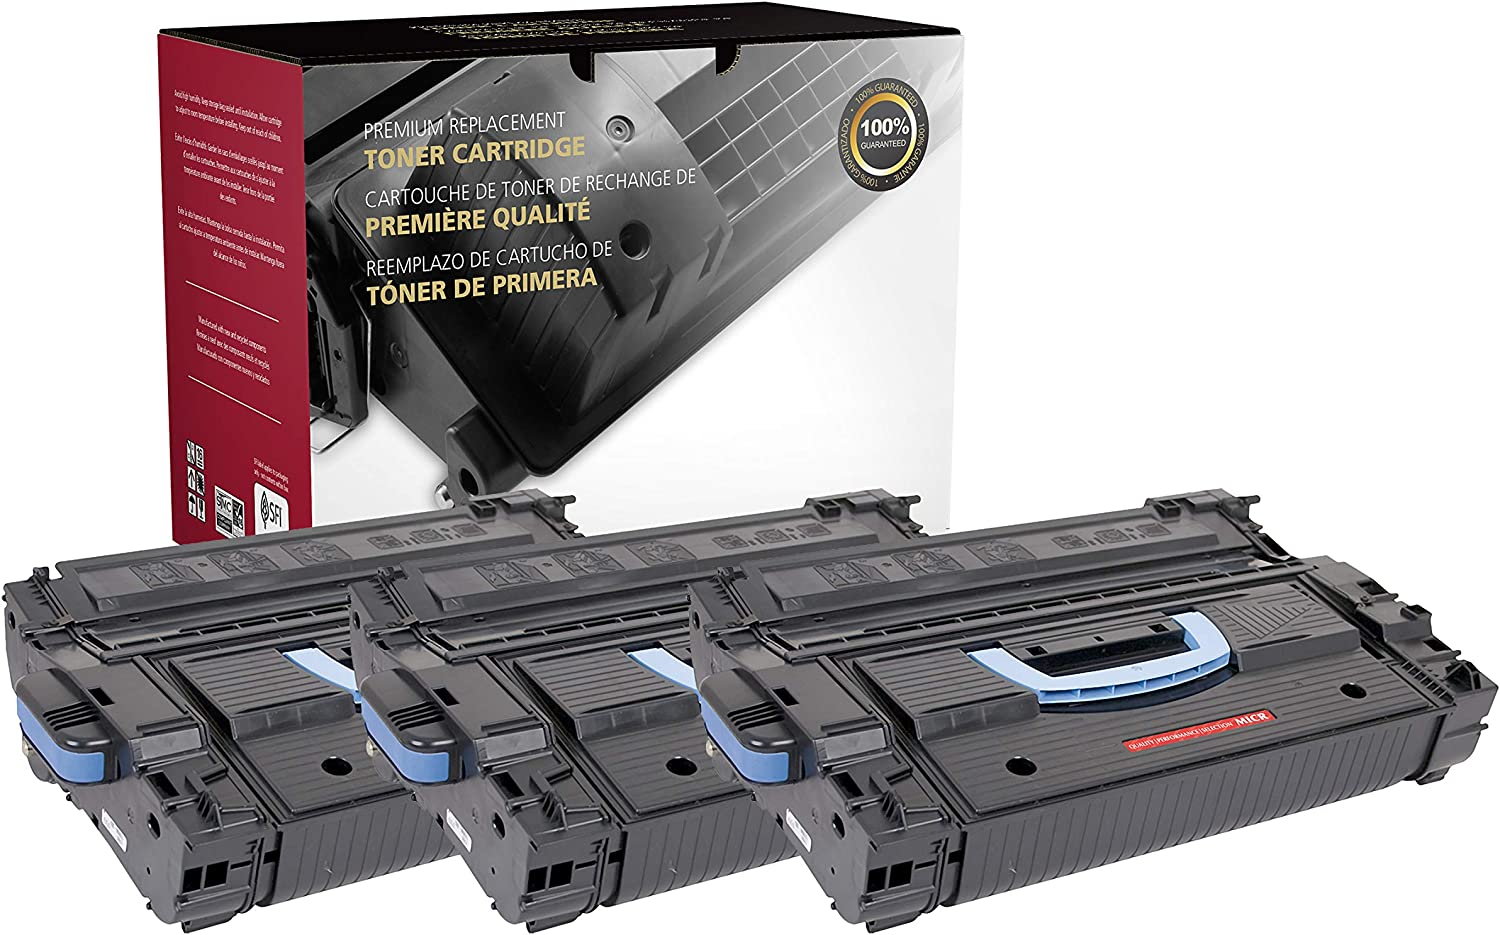 Inksters Remanufactured Toner Cartridge Replacement for HP C8543X MICR (HP 43X) 02-81081-001 - Used with HP Laserjet 9000 9000N 9000DN 9000HNF 9000HNS 9000MFP - 30K Pages (Black) - 3 Pack